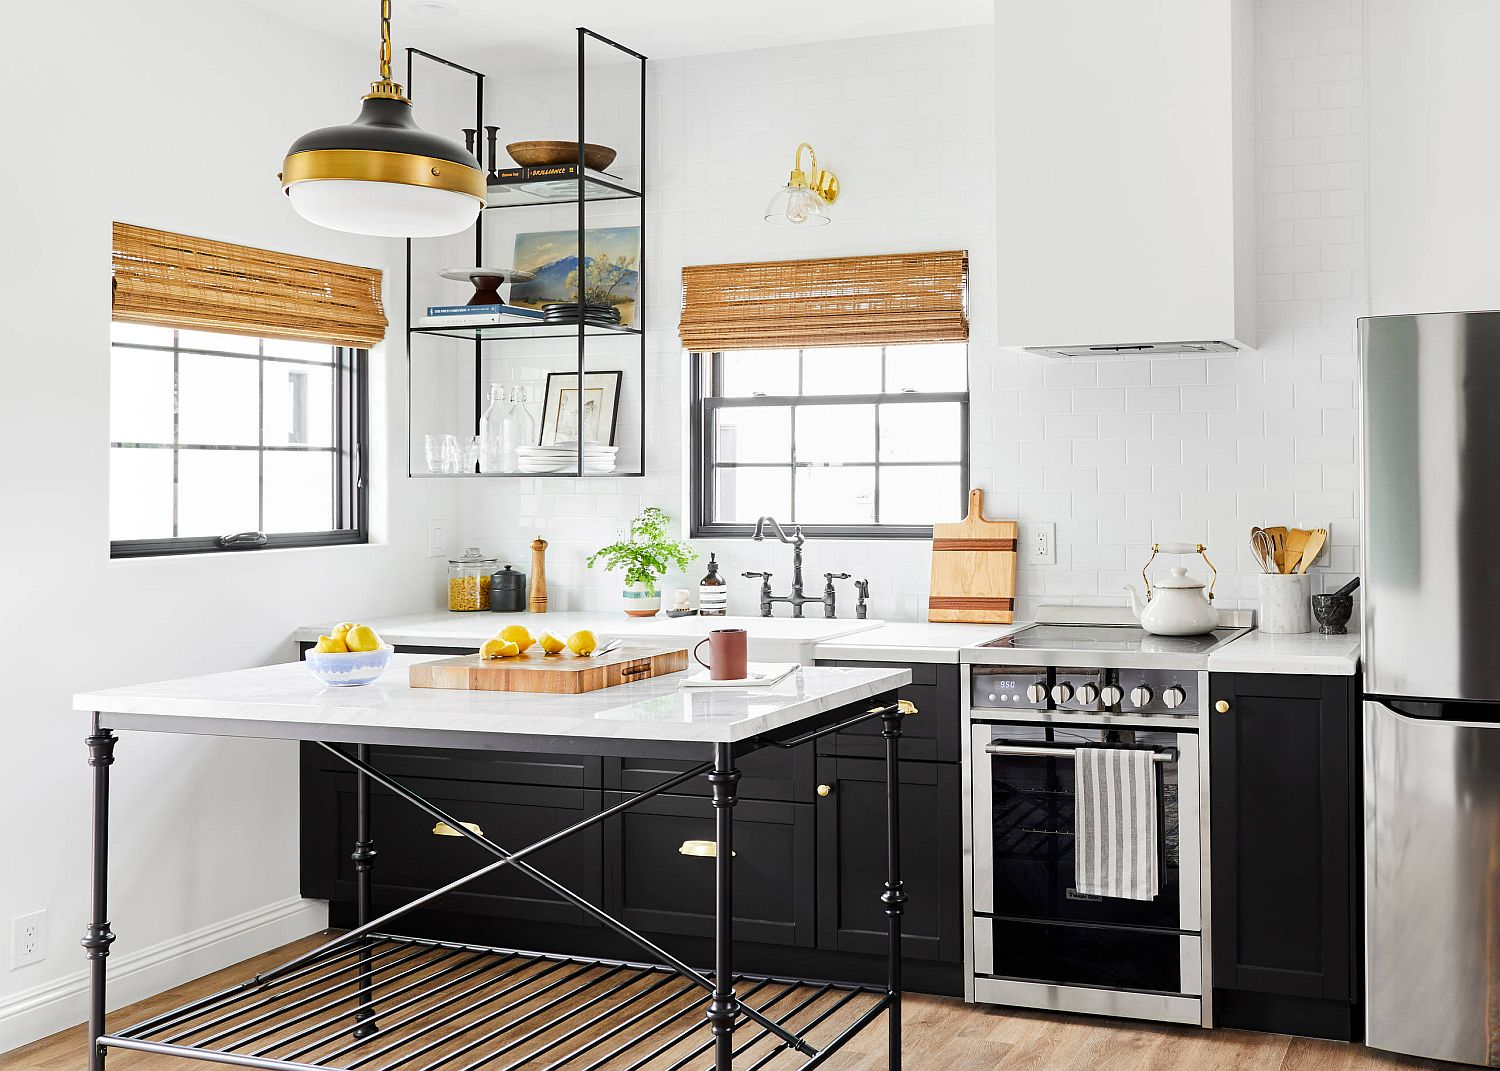 1570614870 837 30 small kitchen lighting ideas that blend form with functionality - 30 Small Kitchen Lighting Ideas that Blend Form with functionality